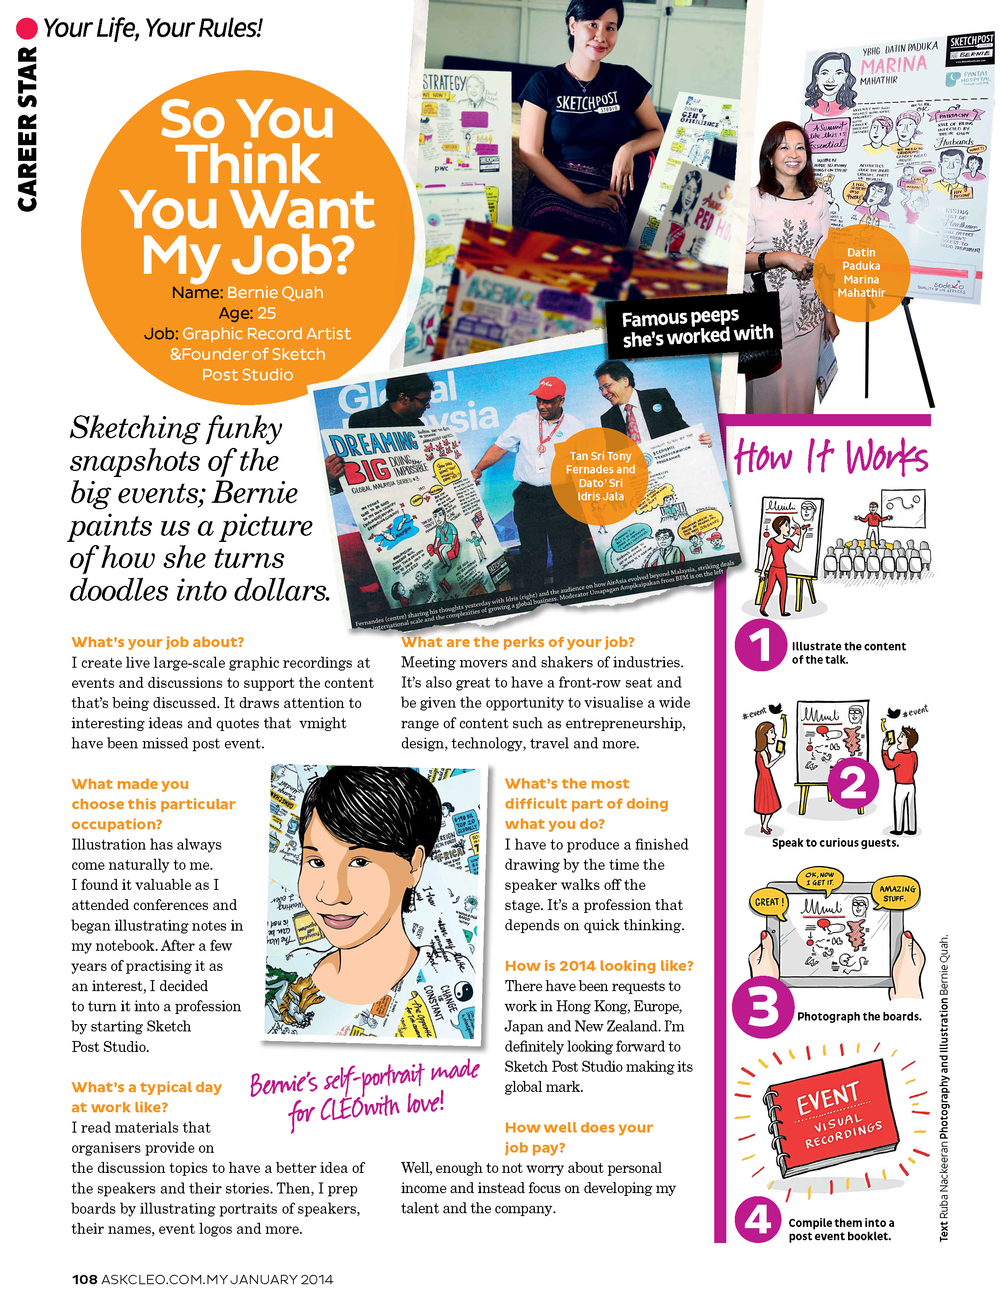 sketchpoststudio-media-cleo-career-star-article-20141201.png